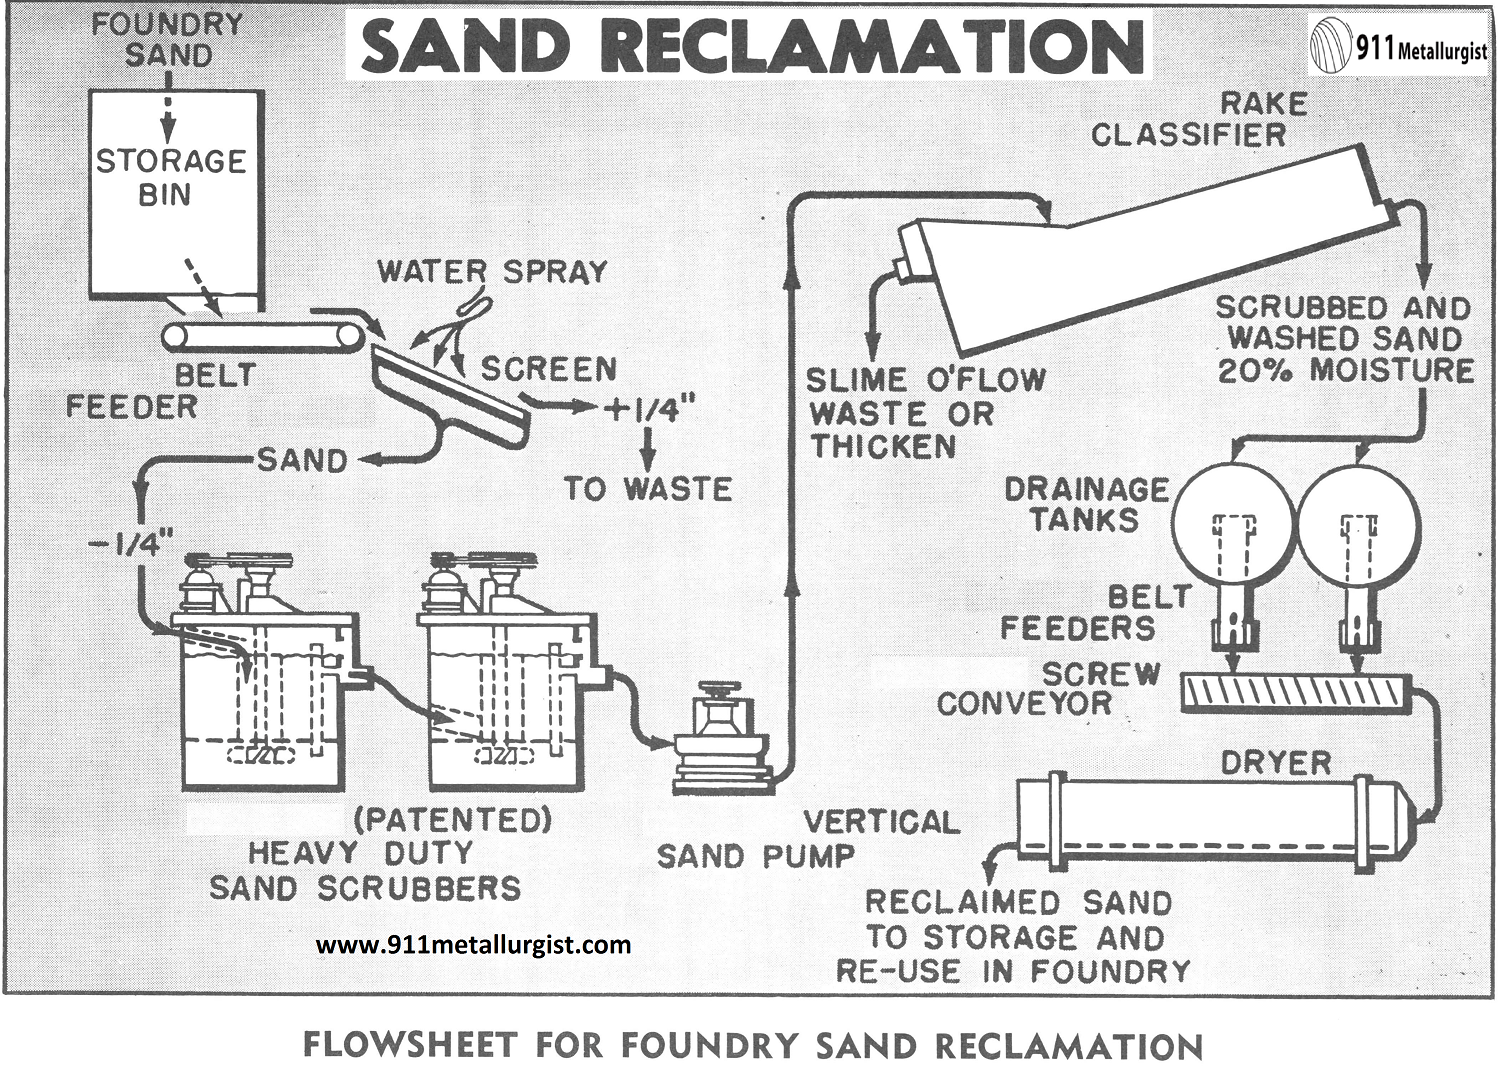 Flowsheet for Foundry Sand Reclamation